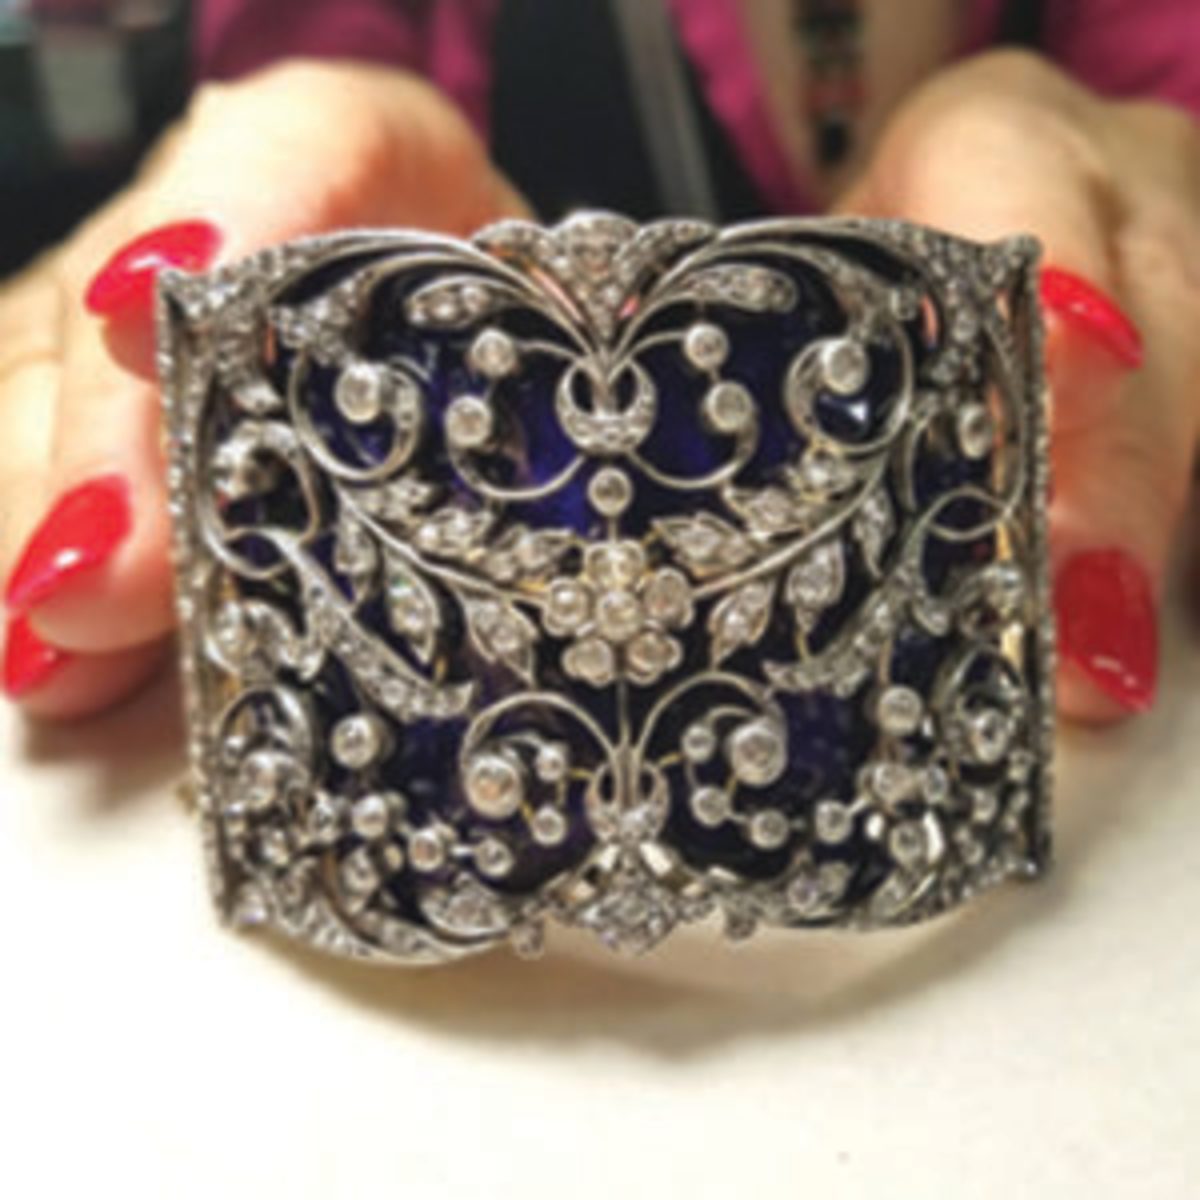 Fine jewelry offered at Grand Bazaar NYC